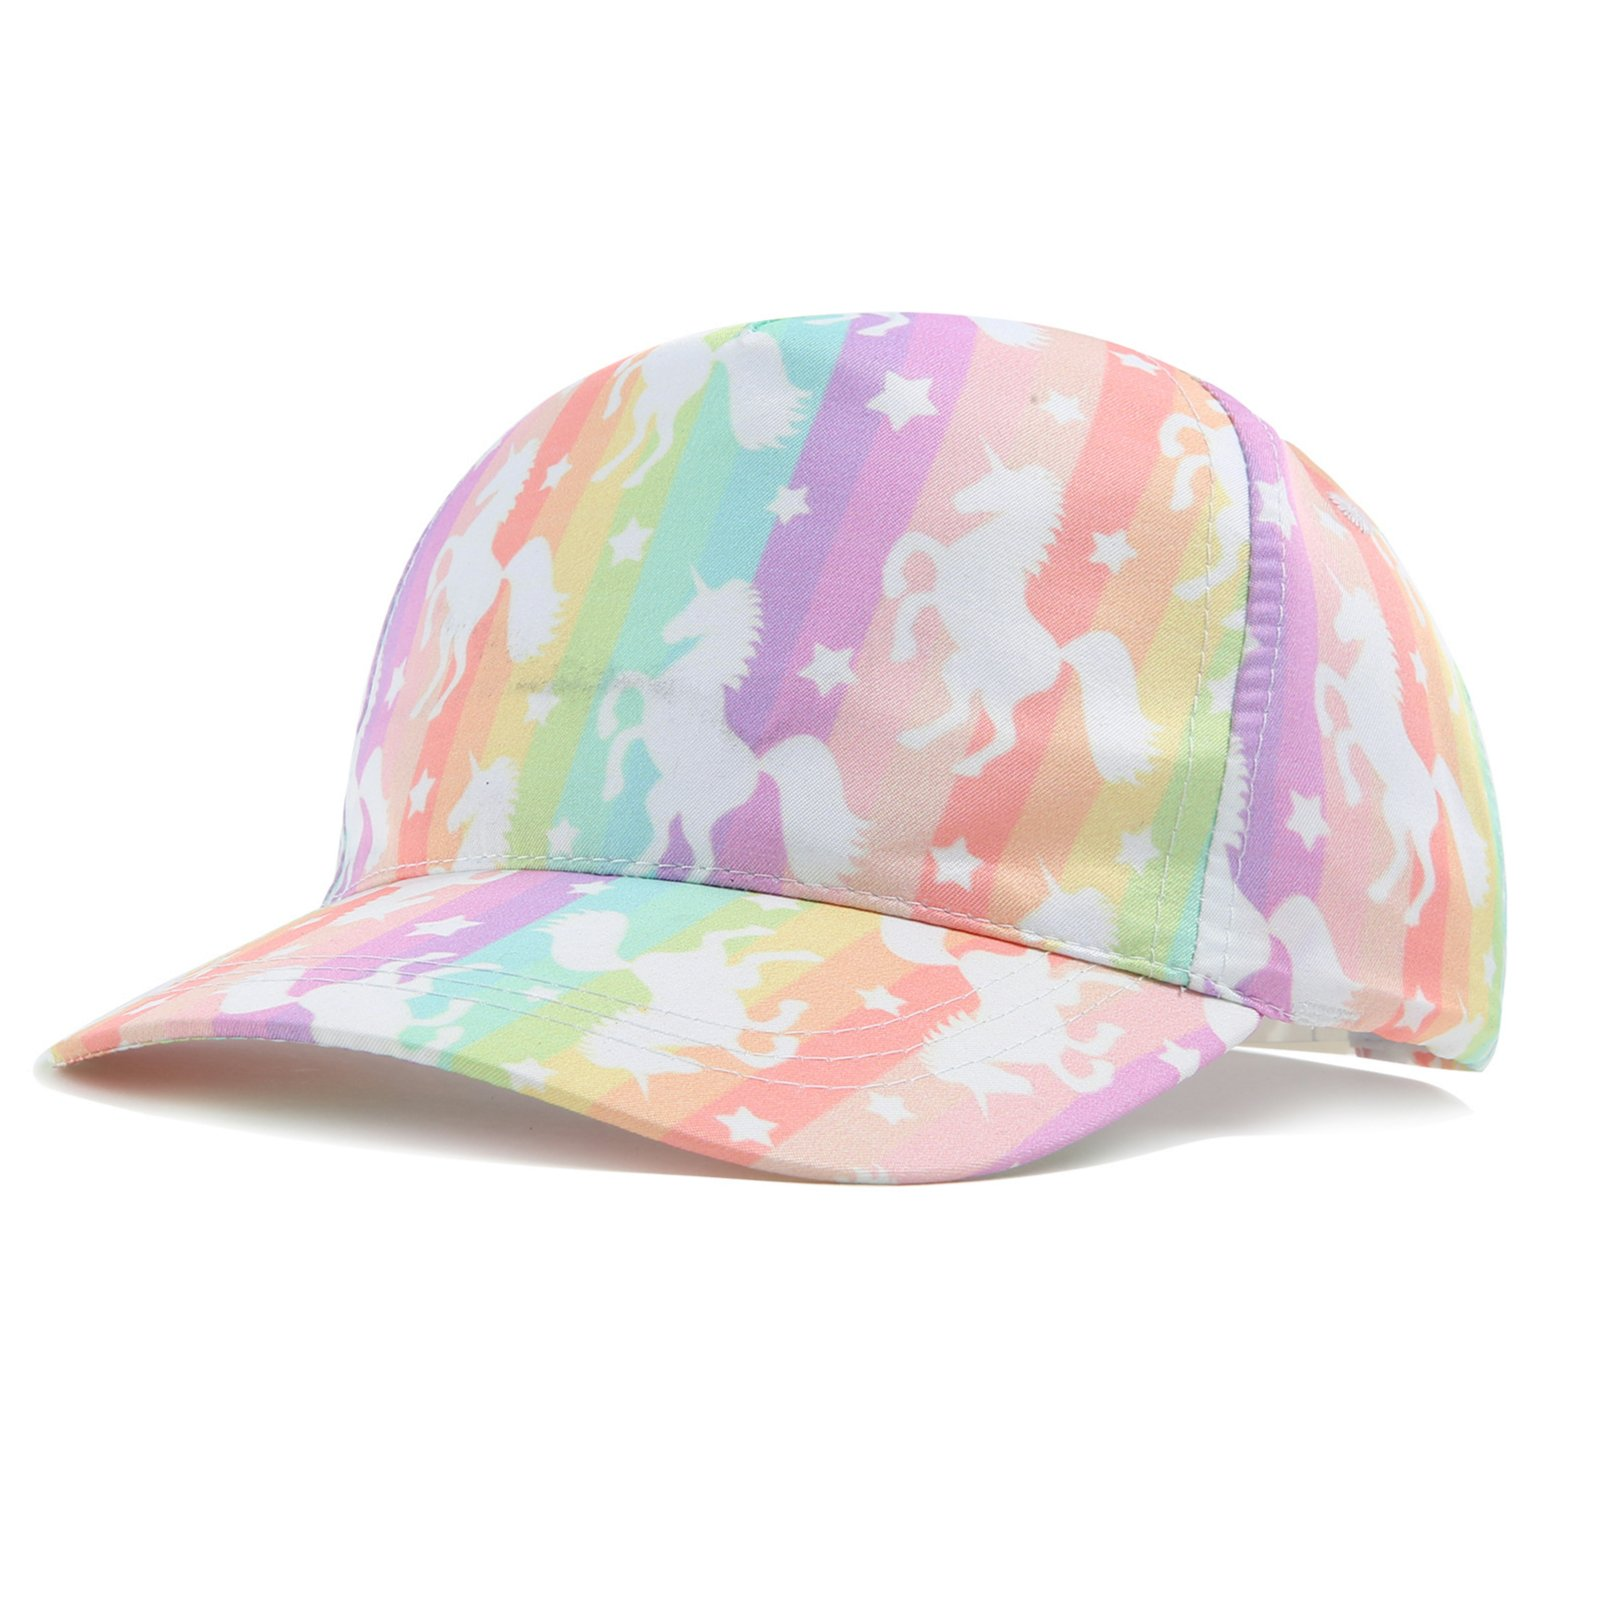 Liliane Girls Baseball Cap Baseball Cap for Girls Cap Girl Summer 3-7Years A043